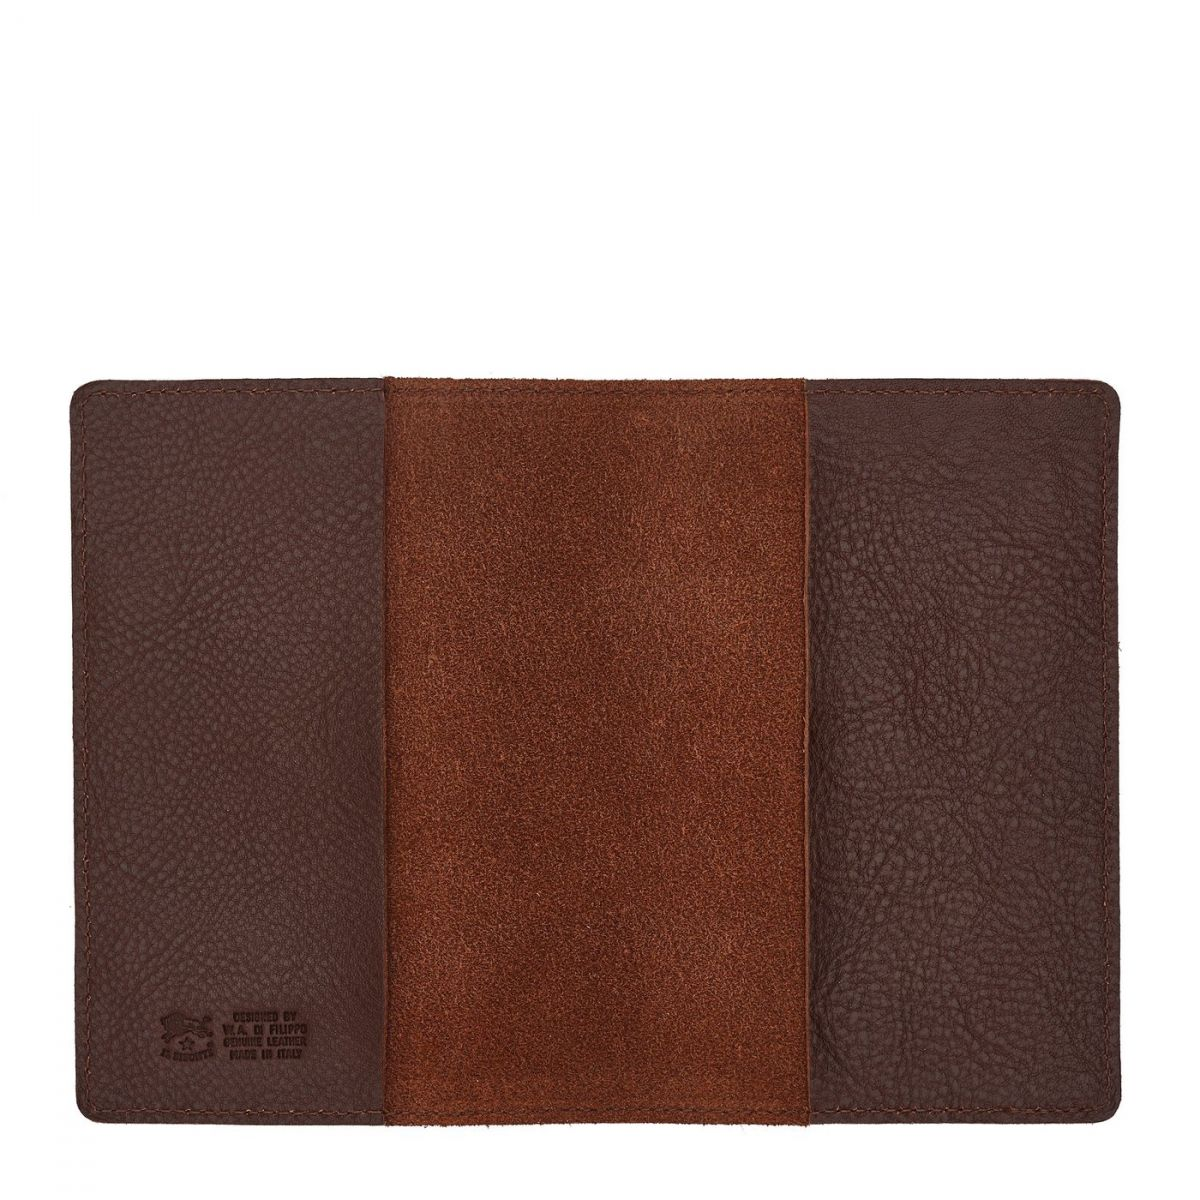 Case  in Cowhide Double Leather SCA005 color Brown | Details